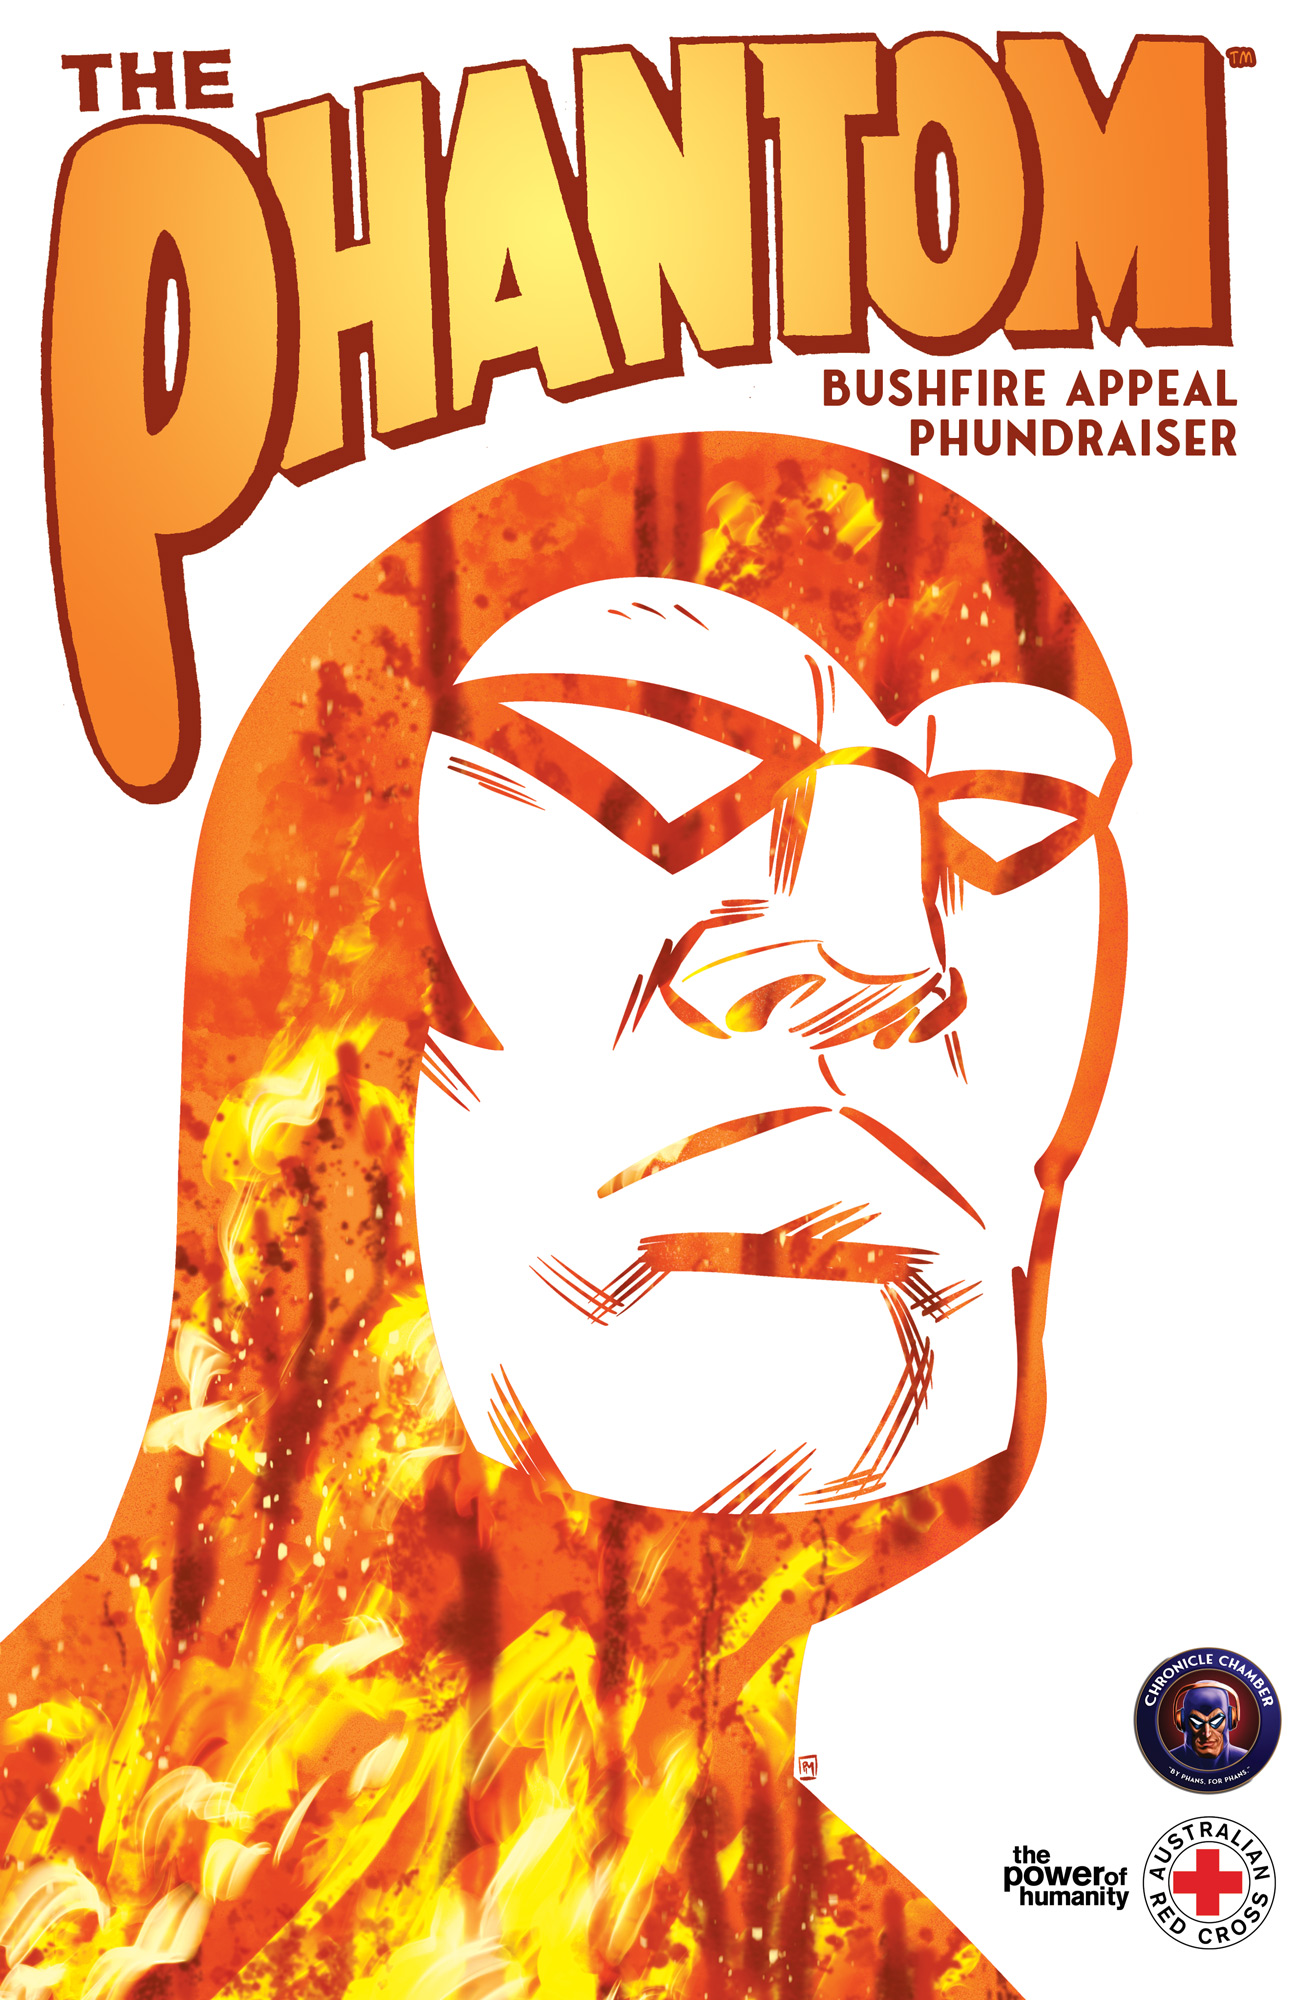 The Phantom Bushfire Appeal Phundraiser Book 2020